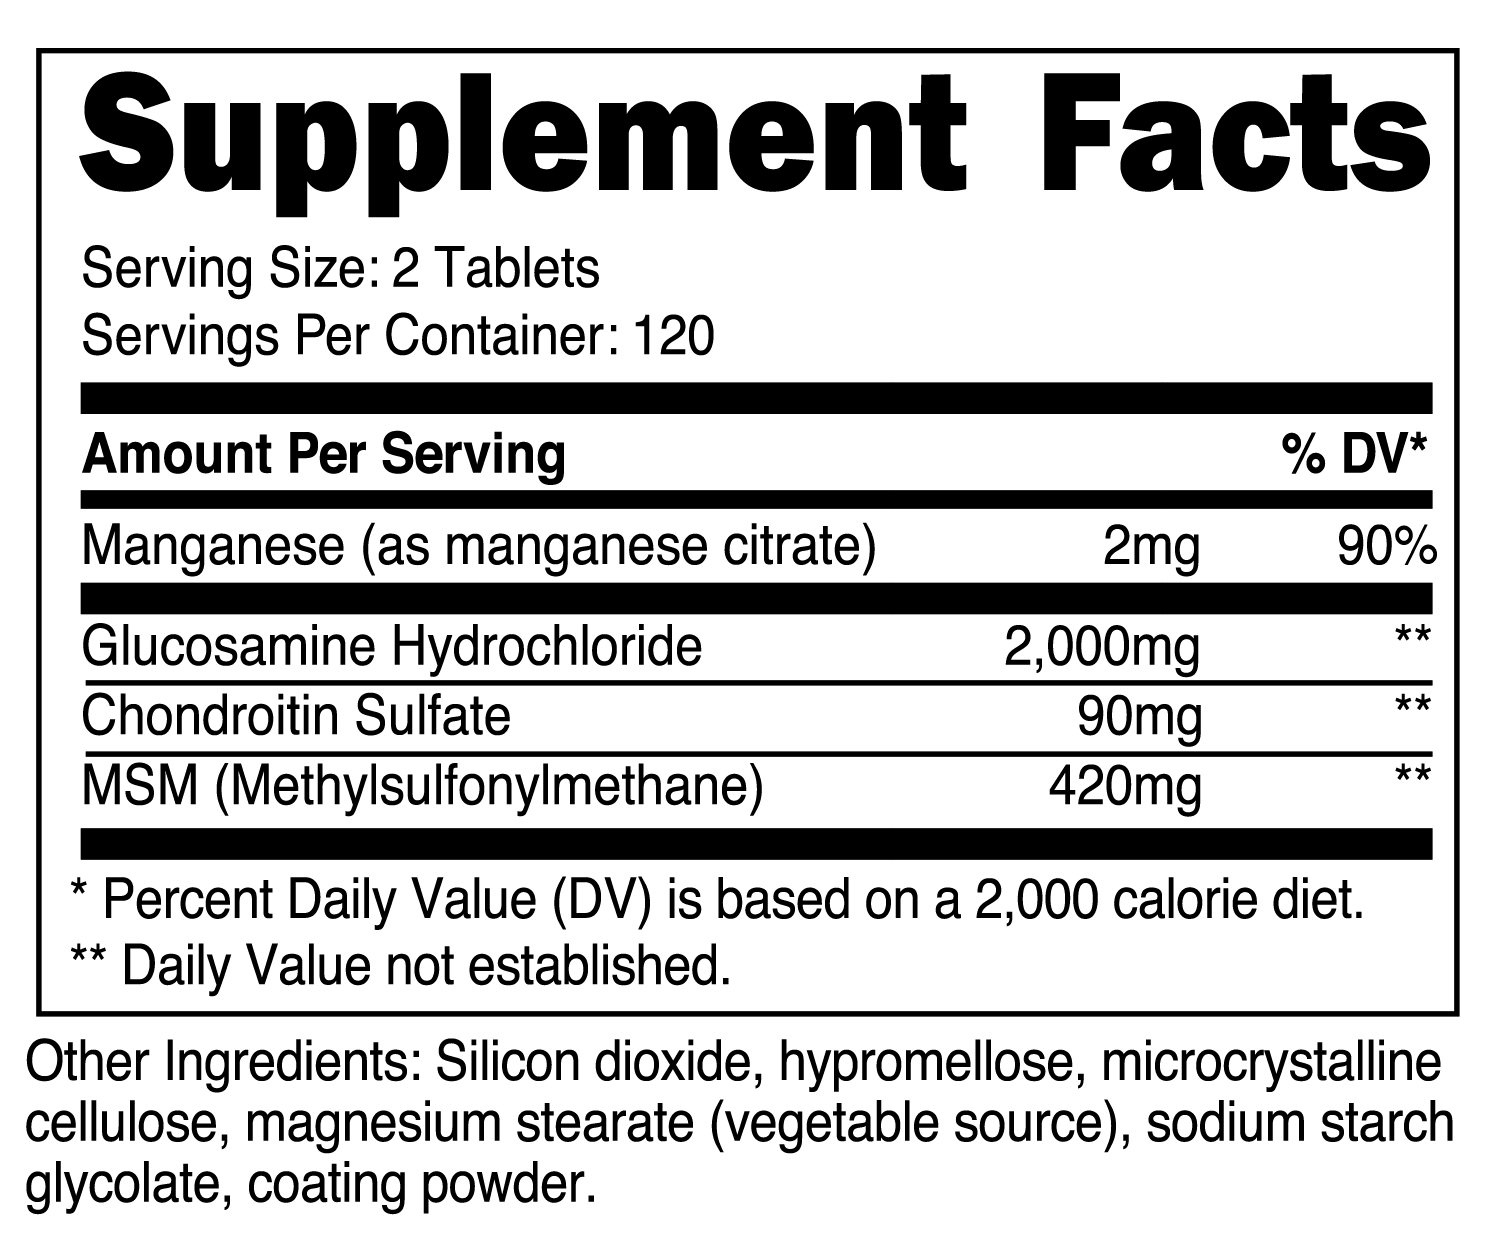 Glucosamine with Chondroitin & MSM Supplement Facts